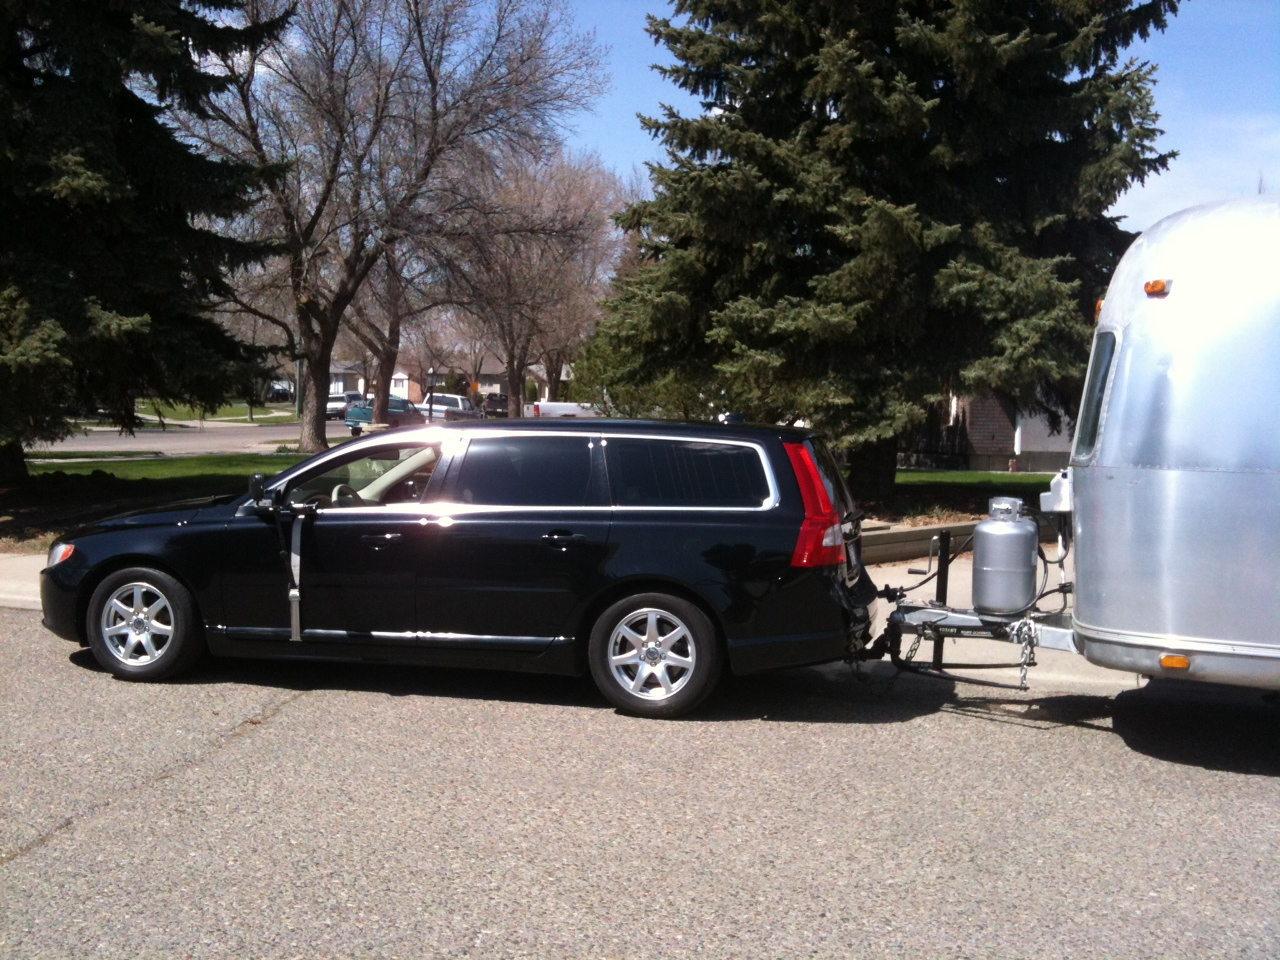 Click image for larger version  Name:Volvo V70 27  Airstream.JPG Views:75 Size:554.3 KB ID:204465